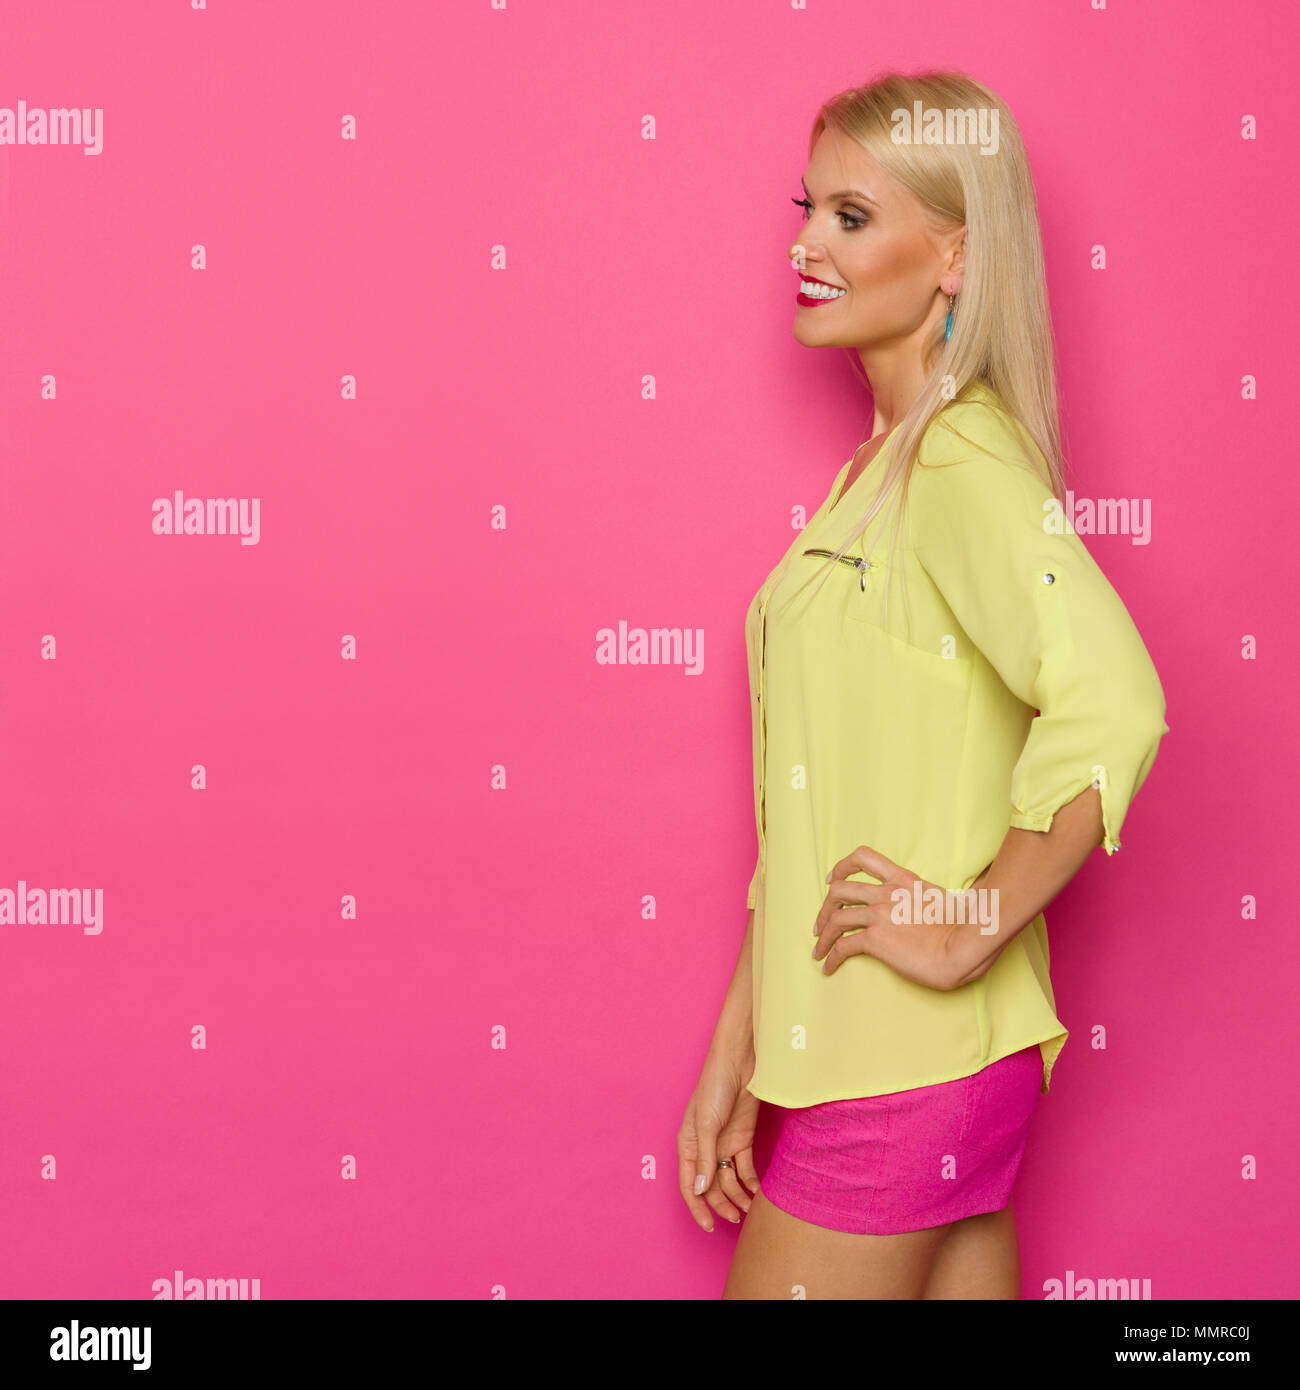 586b6ec5d6775 Beautiful blond woman in yellow shirt and pink shorts is holding hands on  hip